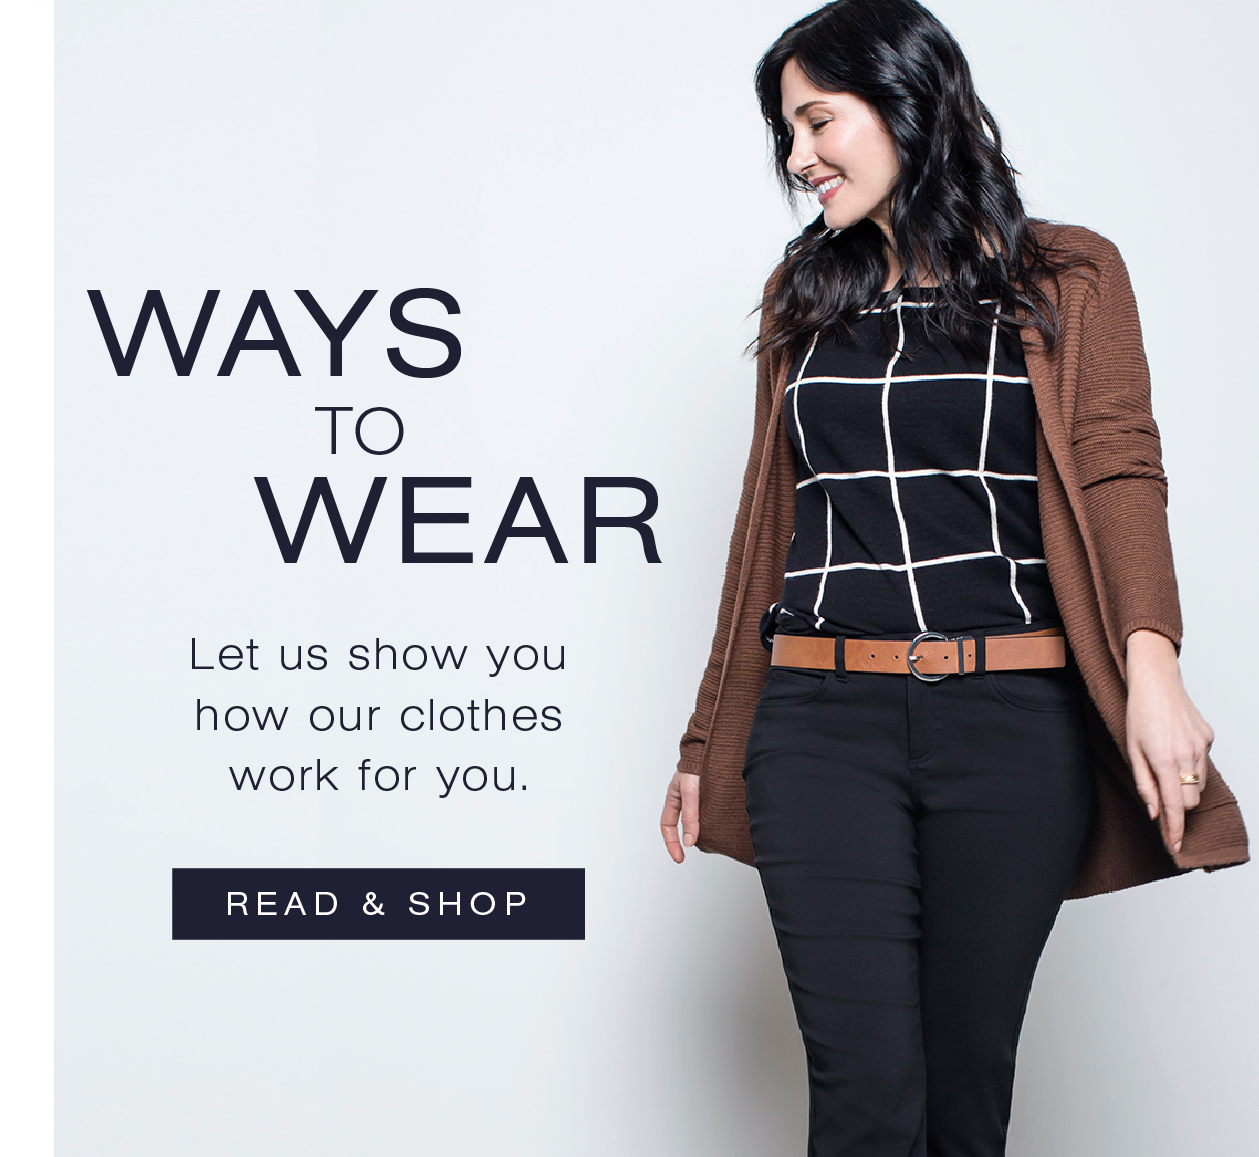 Ways to wear. Let us show you how our clothes work for you. Read and shop.